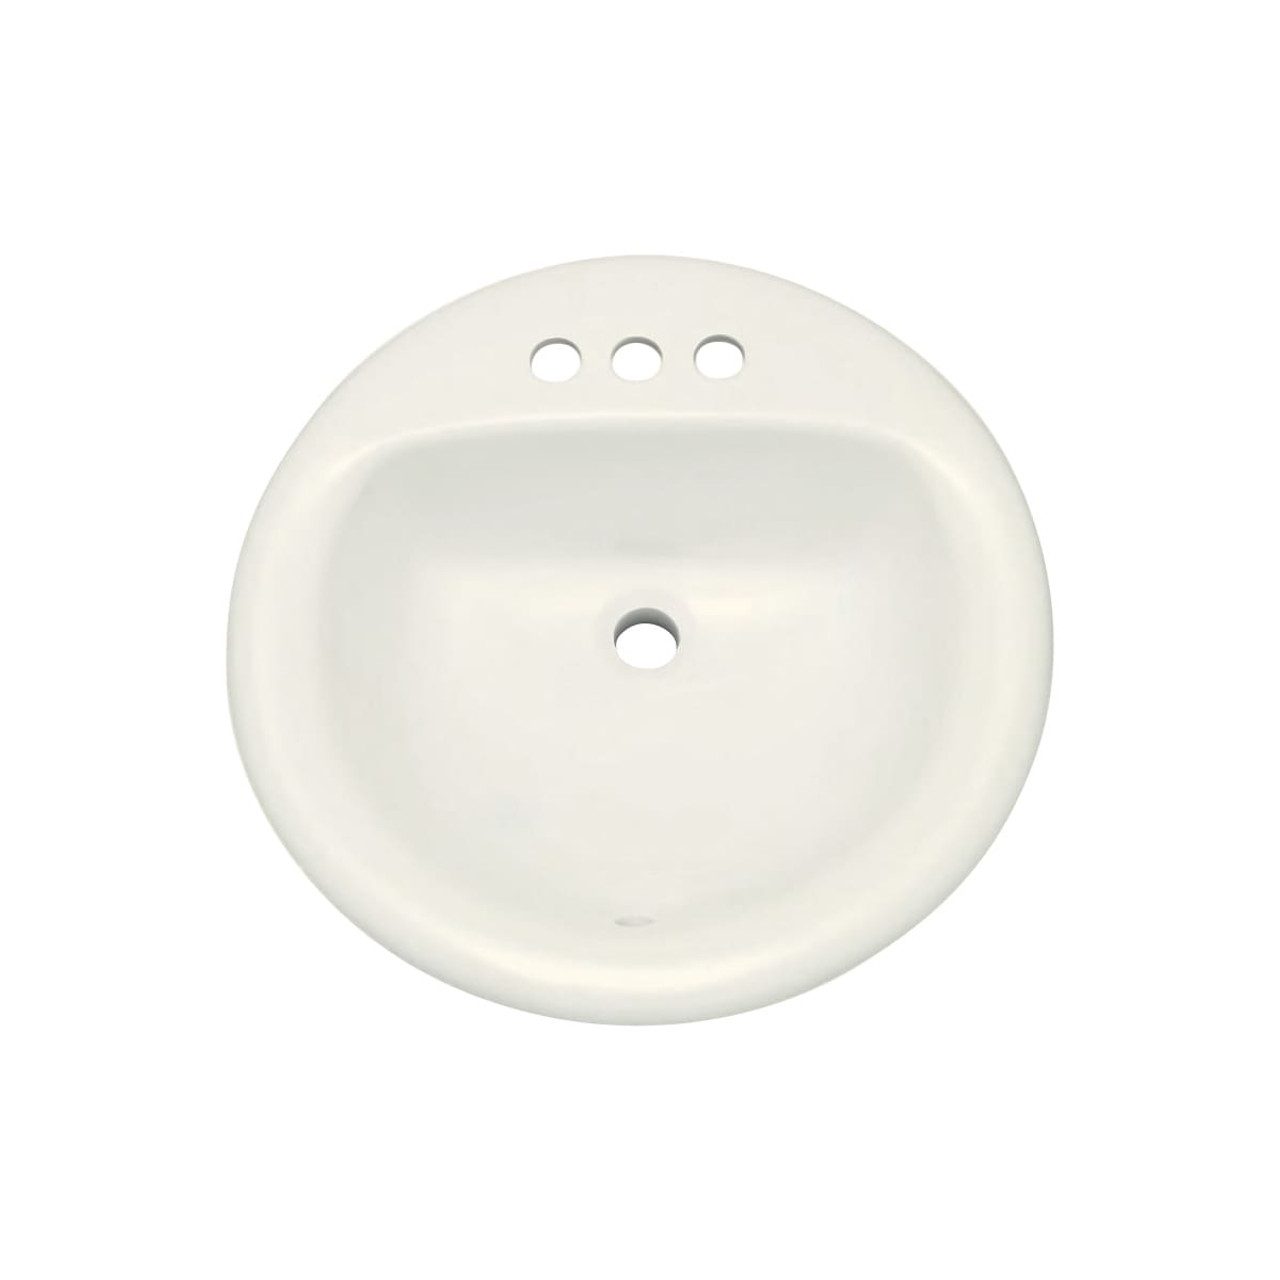 proflo 19 round drop in vitreous china sink with 3 holes and front overlow